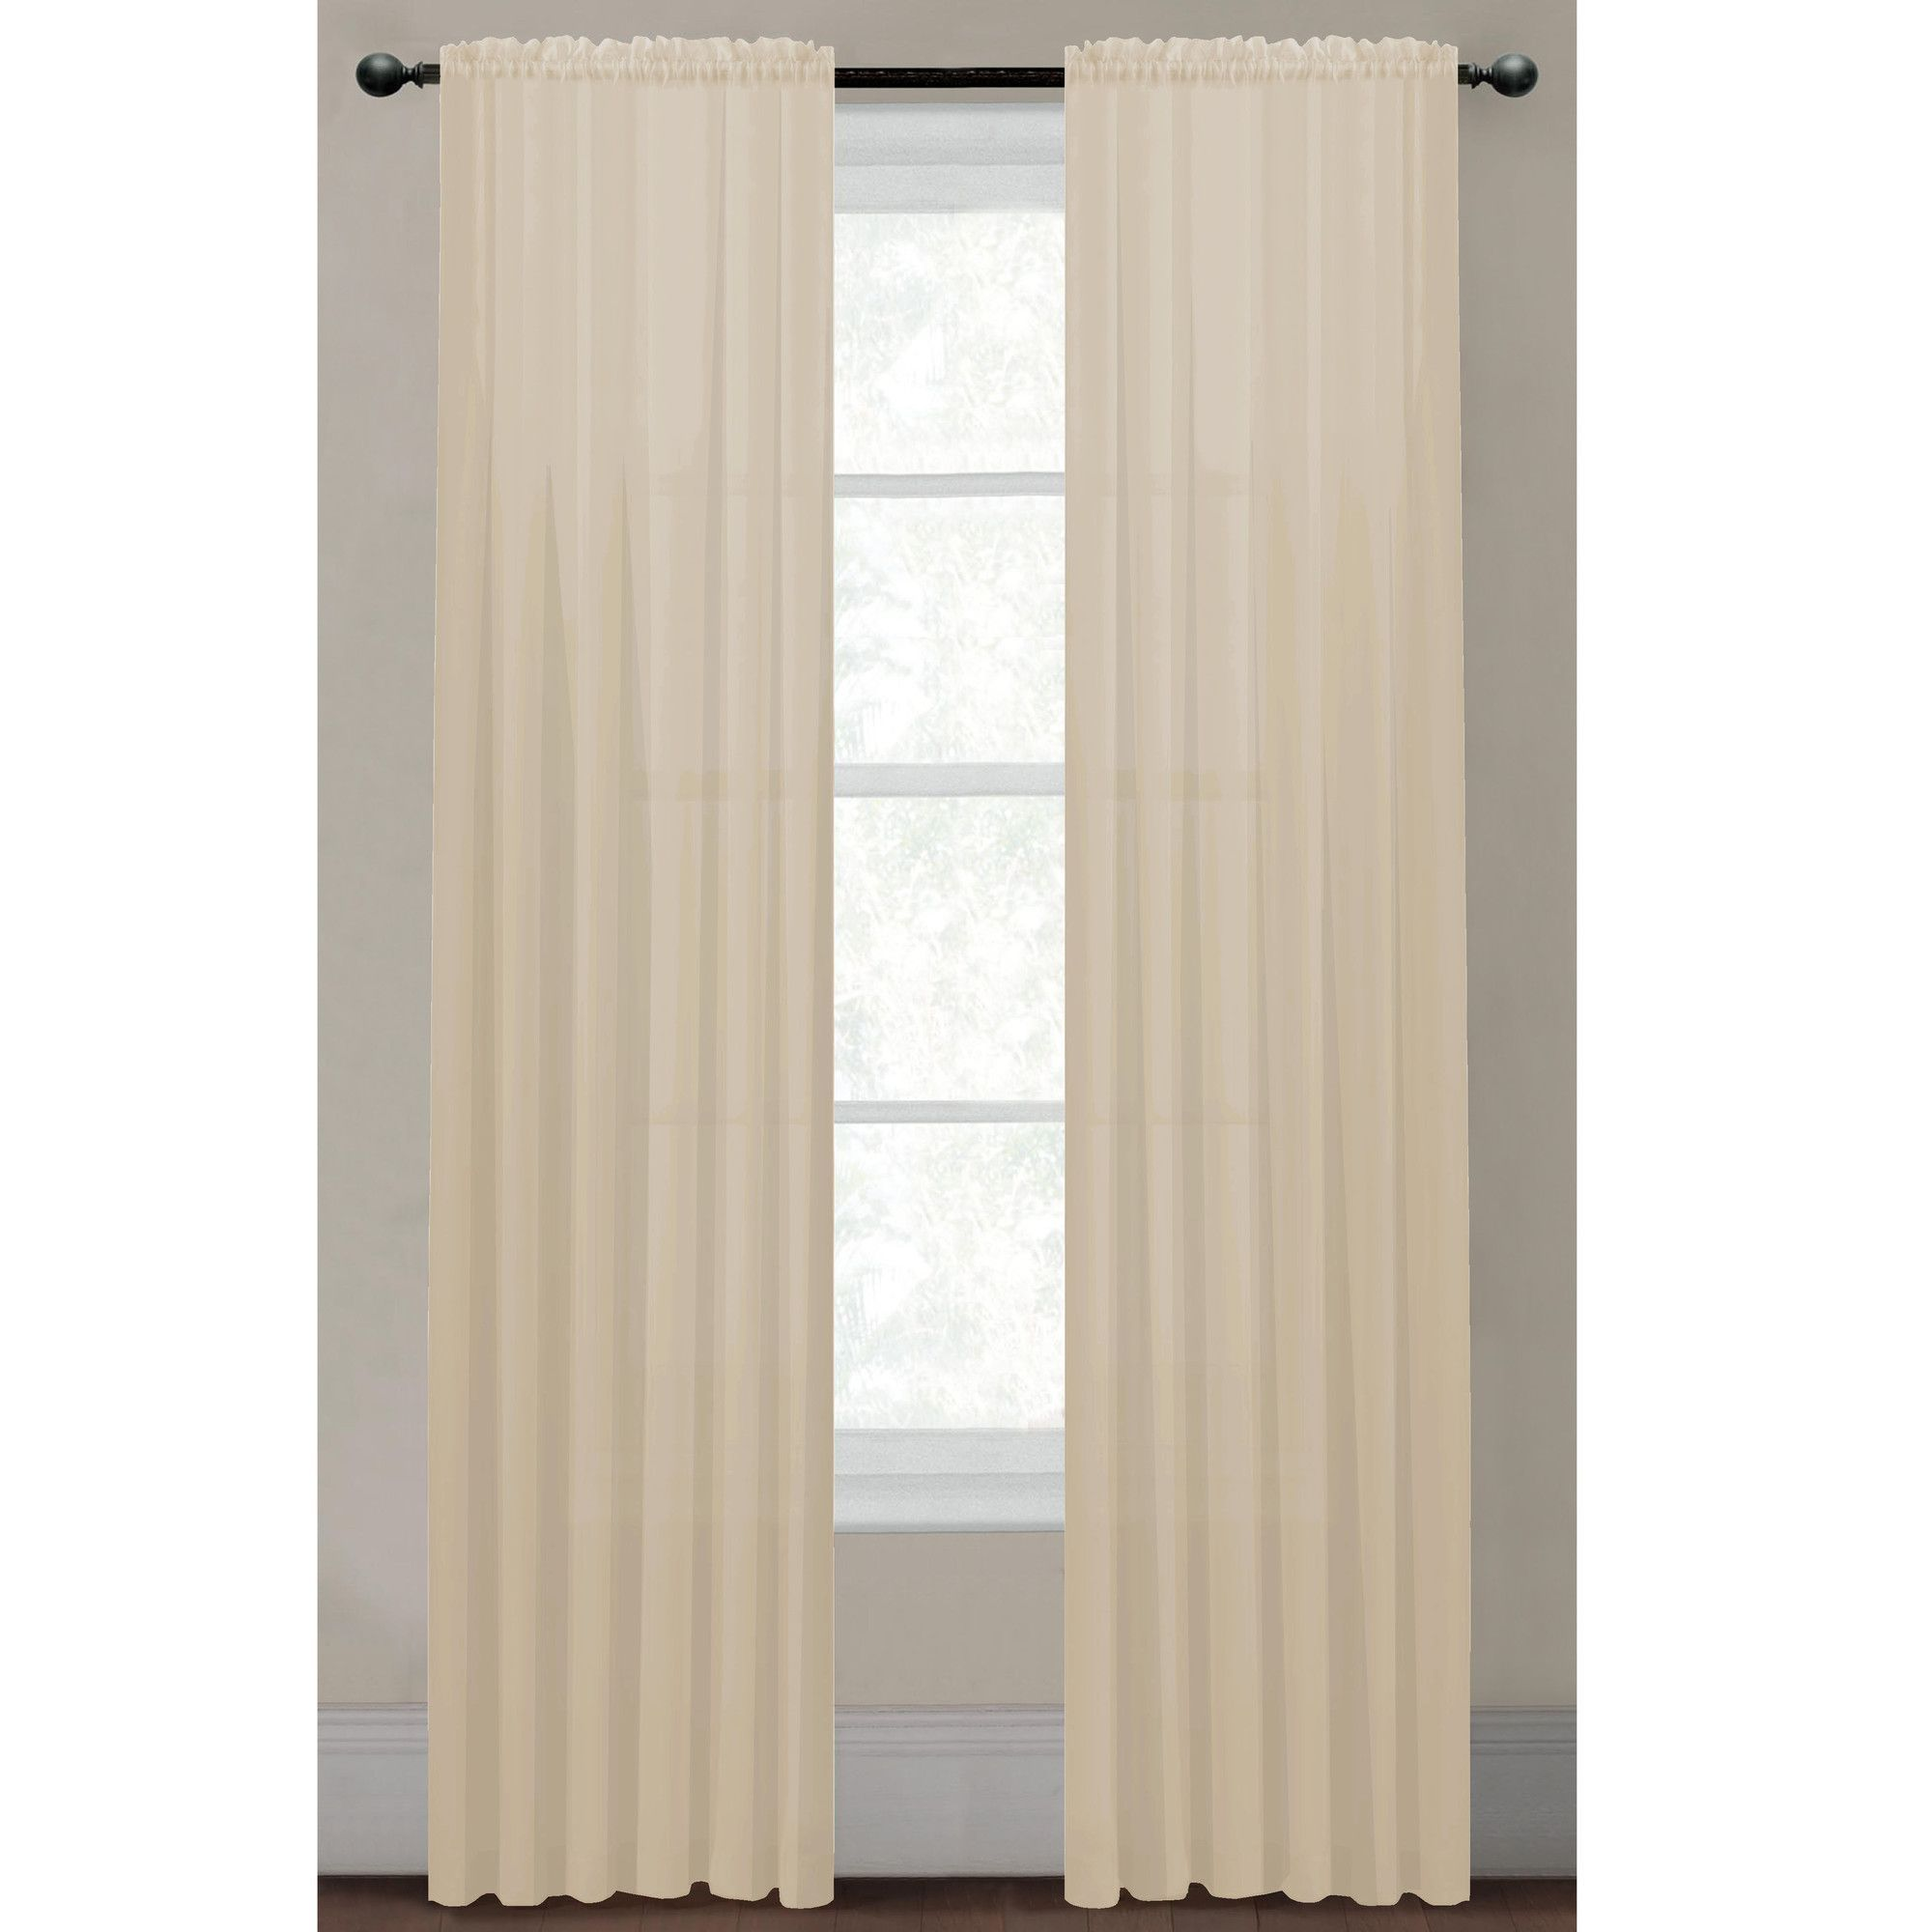 Diamond Sheer Voile Extra Wide Rod Pocket Curtain Panels Panel